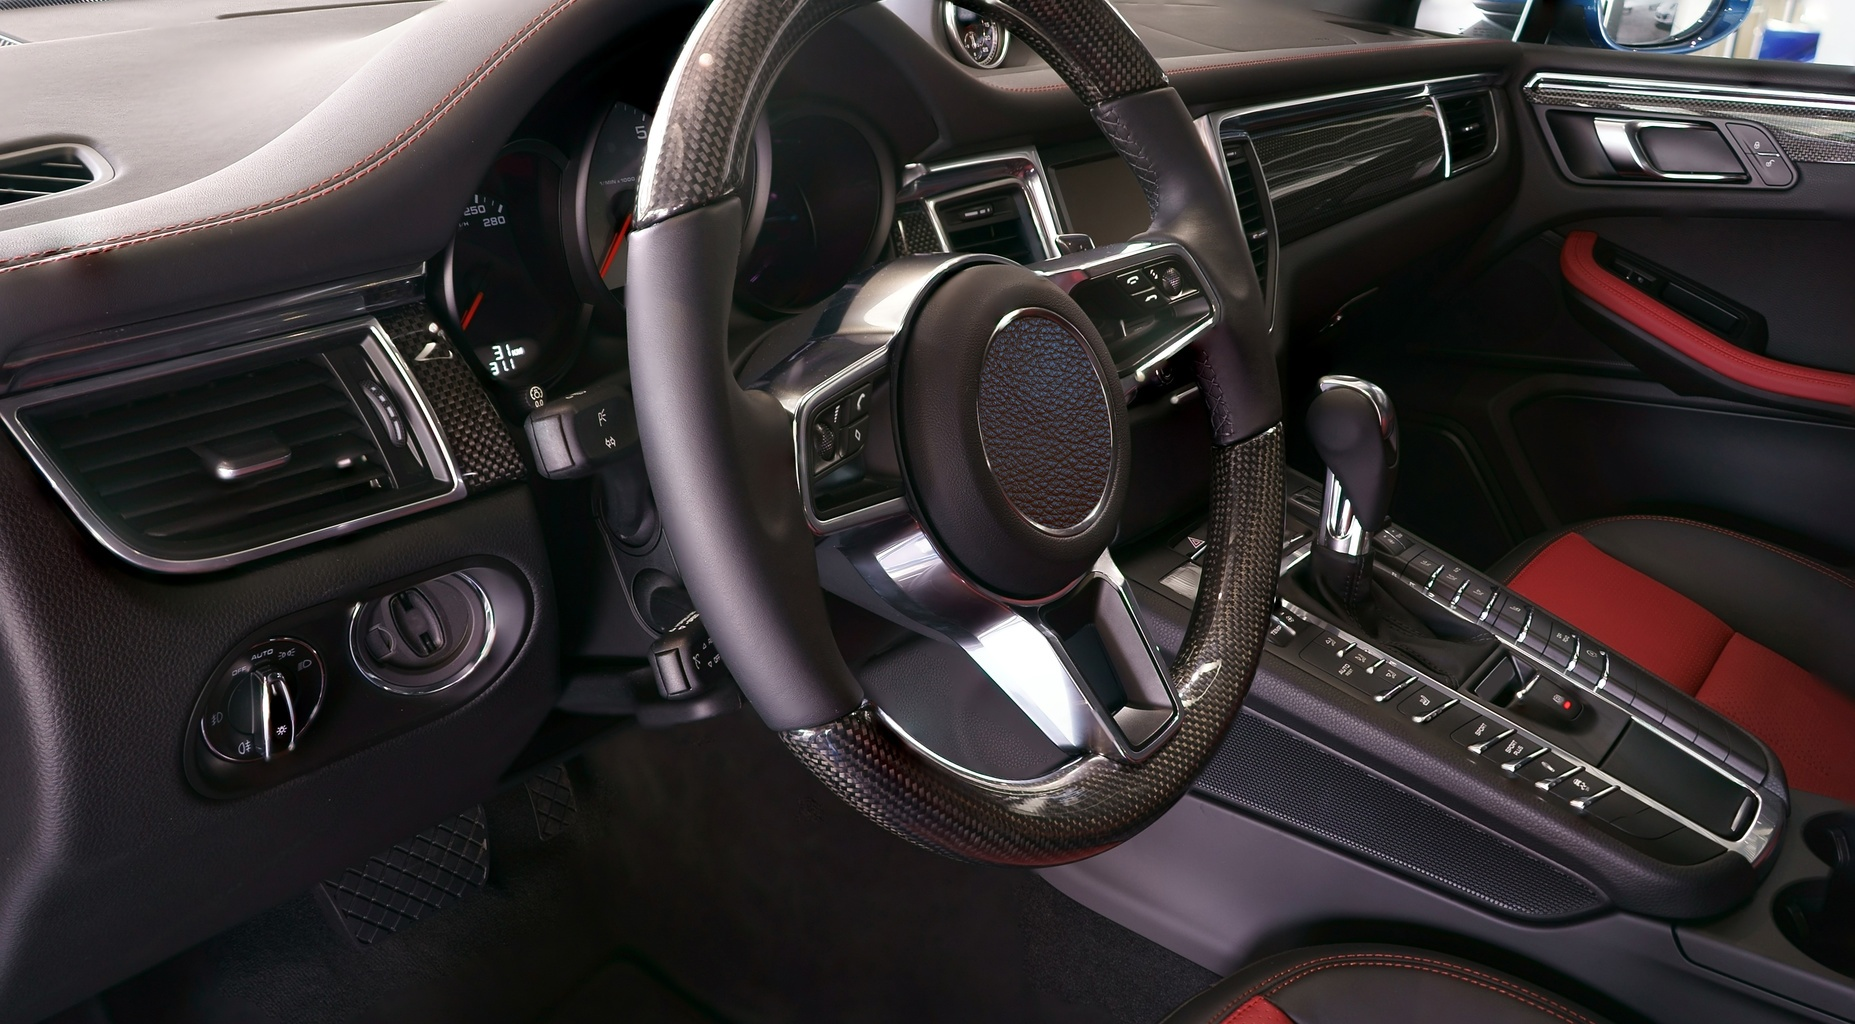 Steering wheel inside a vehicle equipped with an EPS system